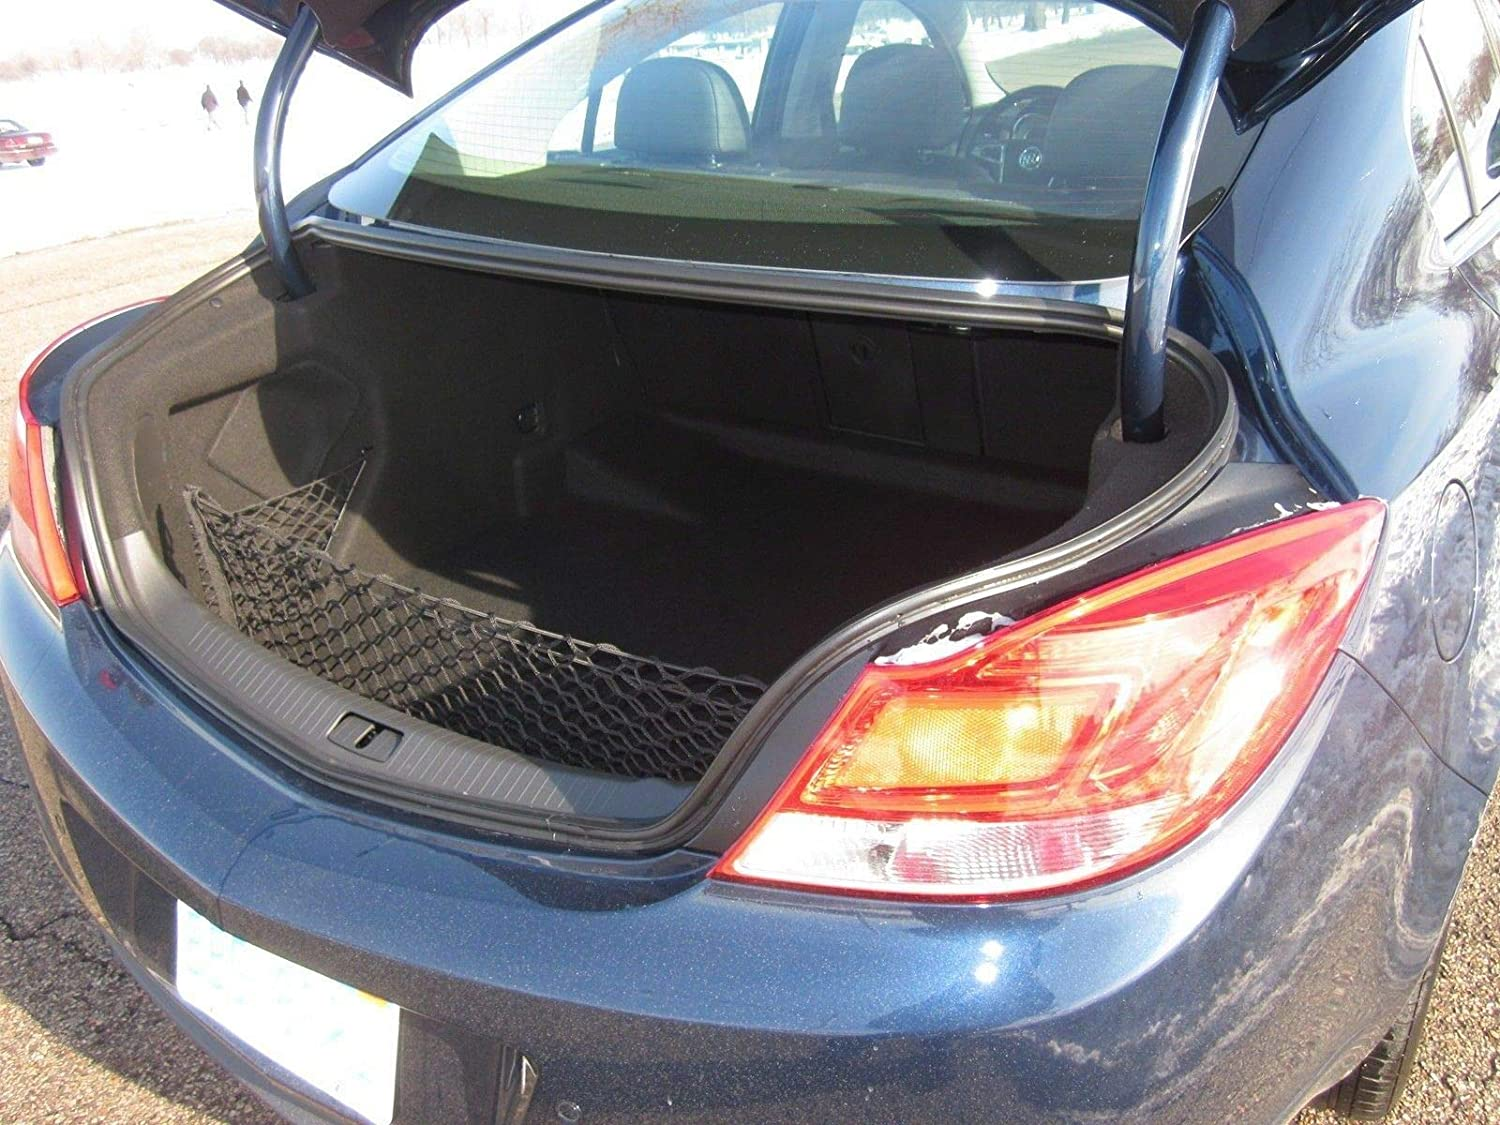 Stretchable Max 54% OFF Envelope Style Trunk Cargo Net Buick Regal Topics on TV 2011- for